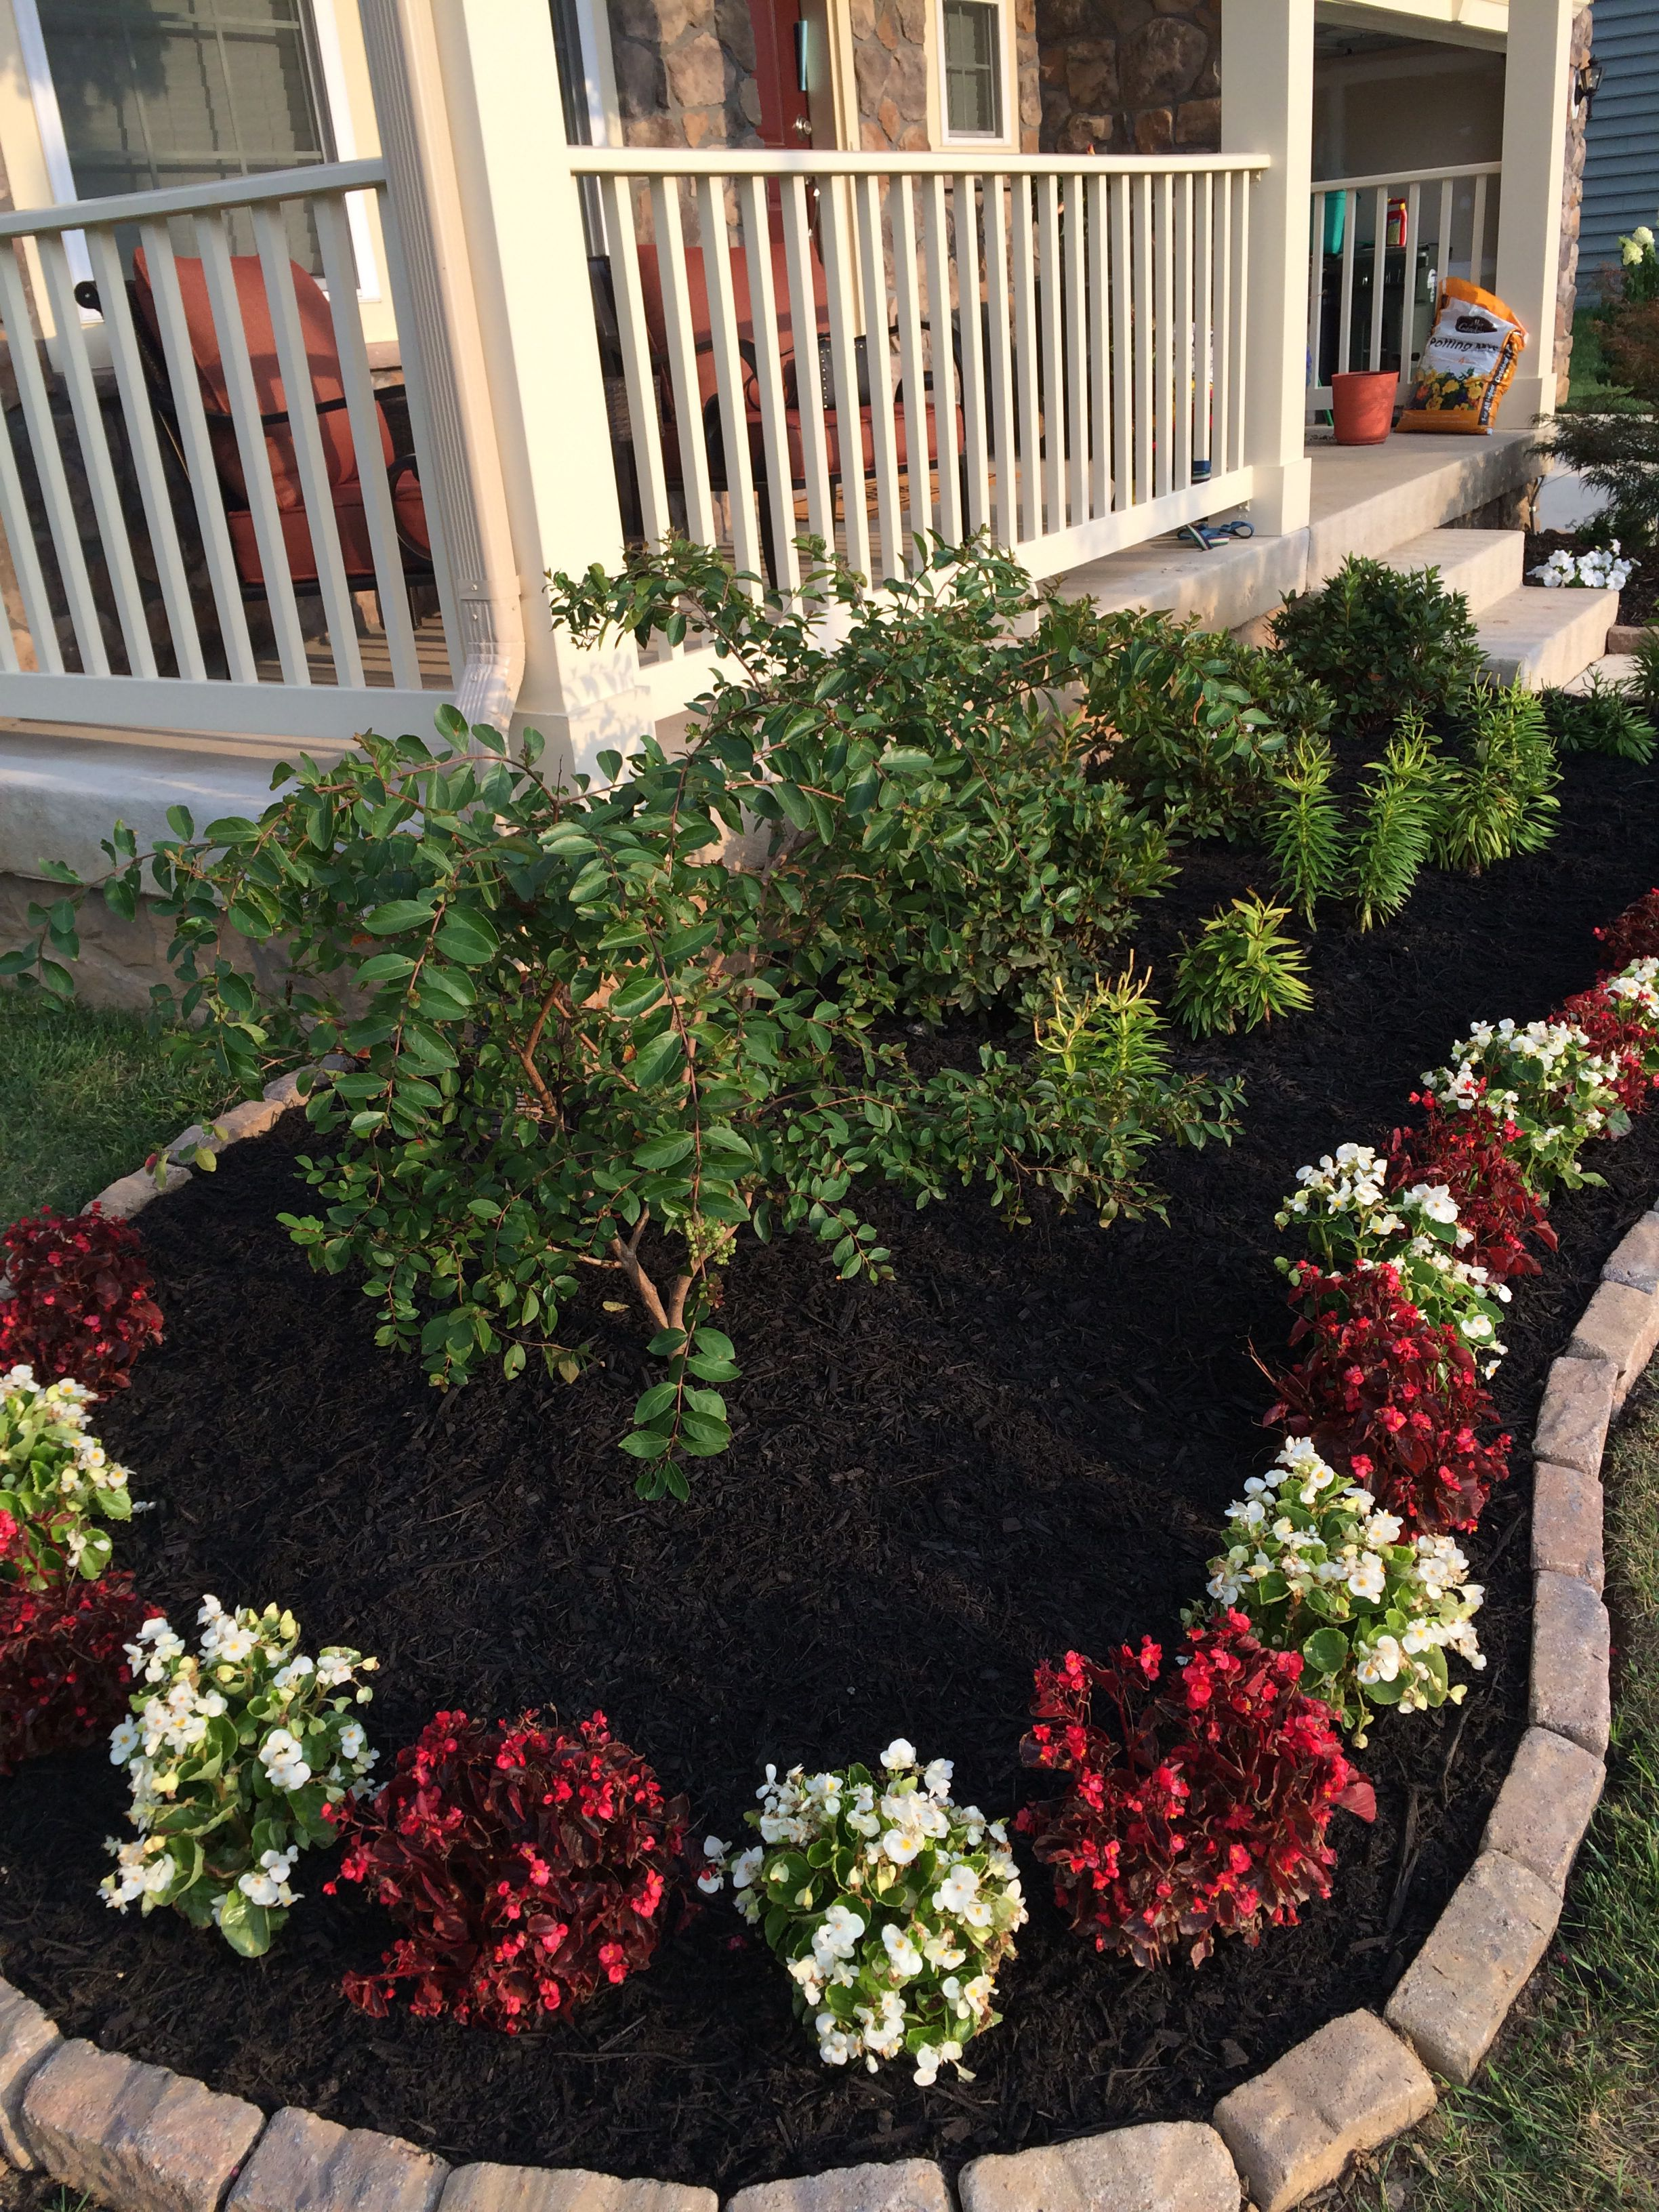 Begonias With A White Acoma Crape Myrtle Front Yard Garden Front Yard Crape Myrtle